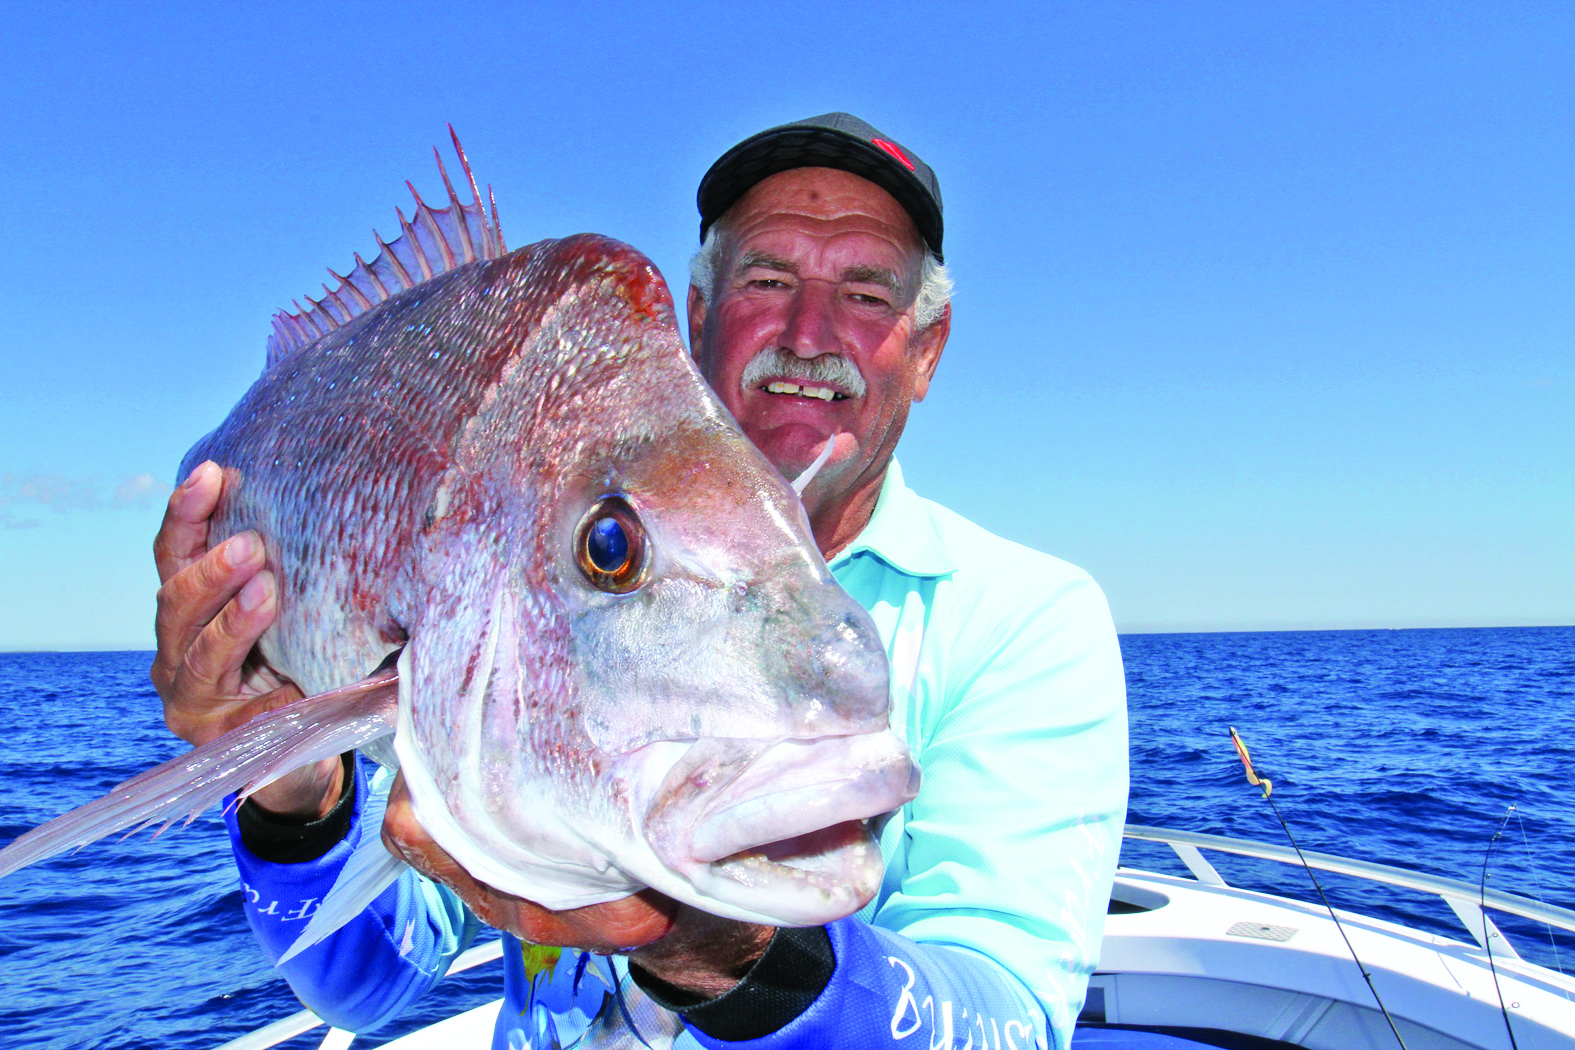 A snapper caught on a 5'' Berkley Gulp in Pink Shine from his new Stessl.